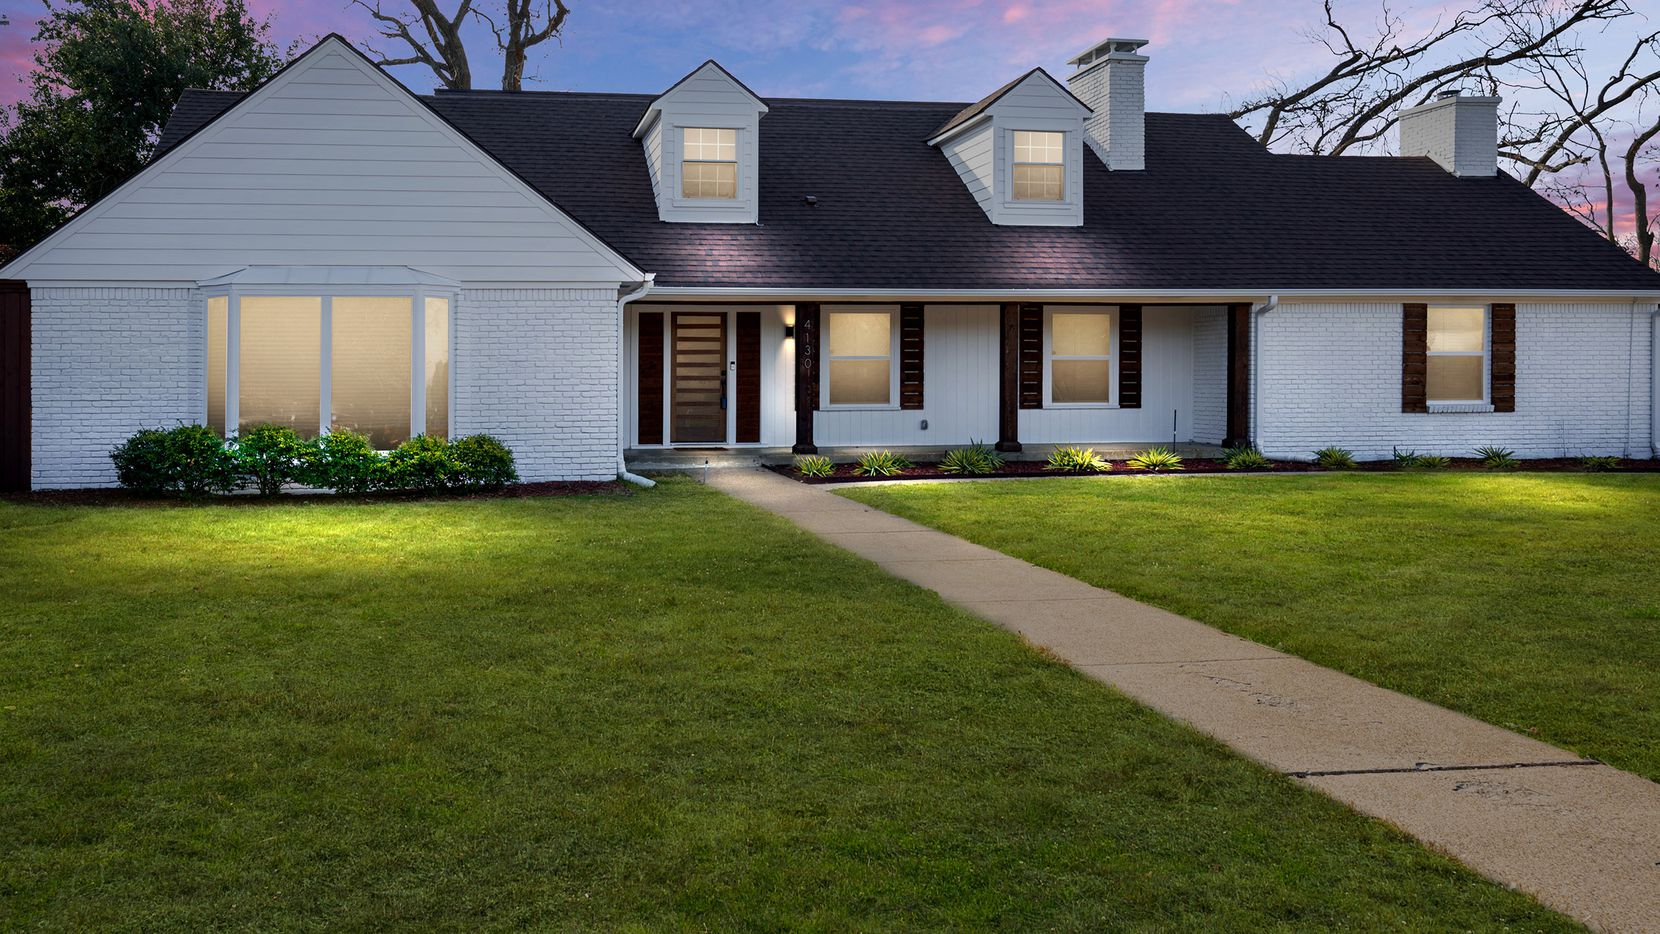 The remodeled home at 4130 Walnut Hill Drive has four bedrooms and a large backyard.